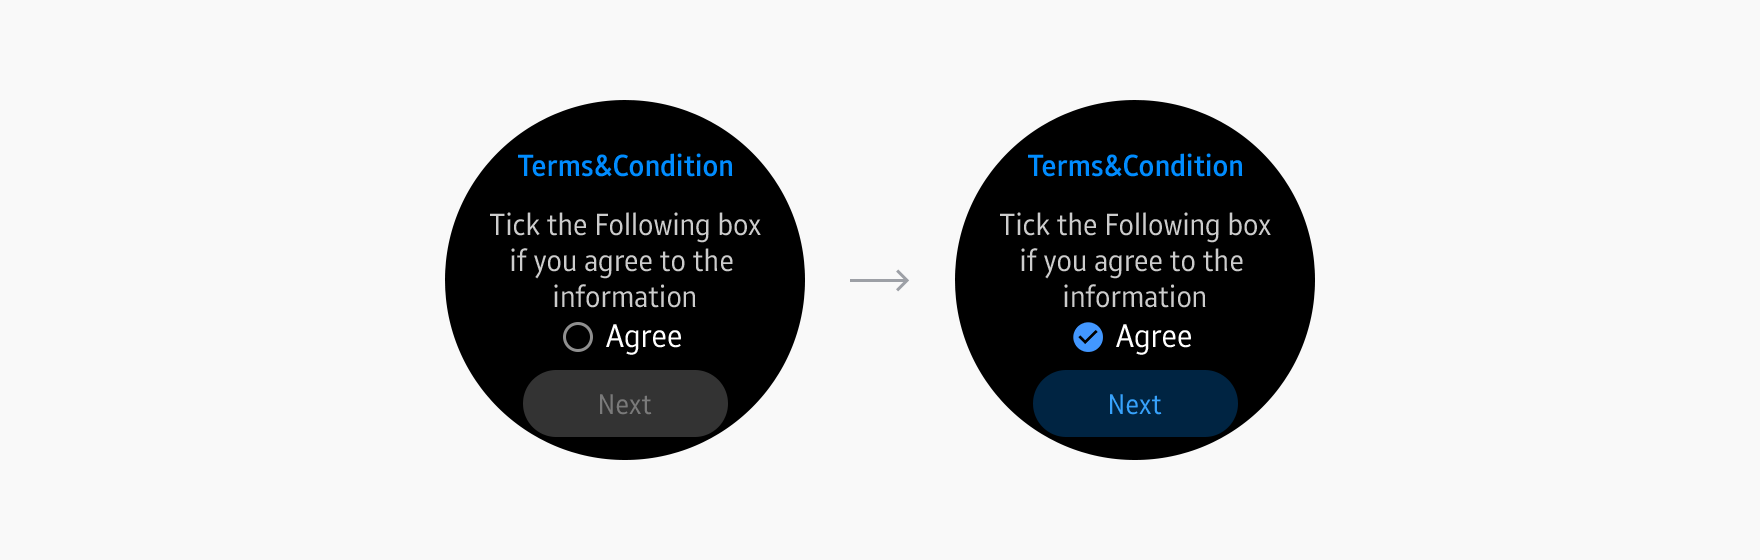 Terms and conditions provide a checkbox below the content so users can agree or disagree.